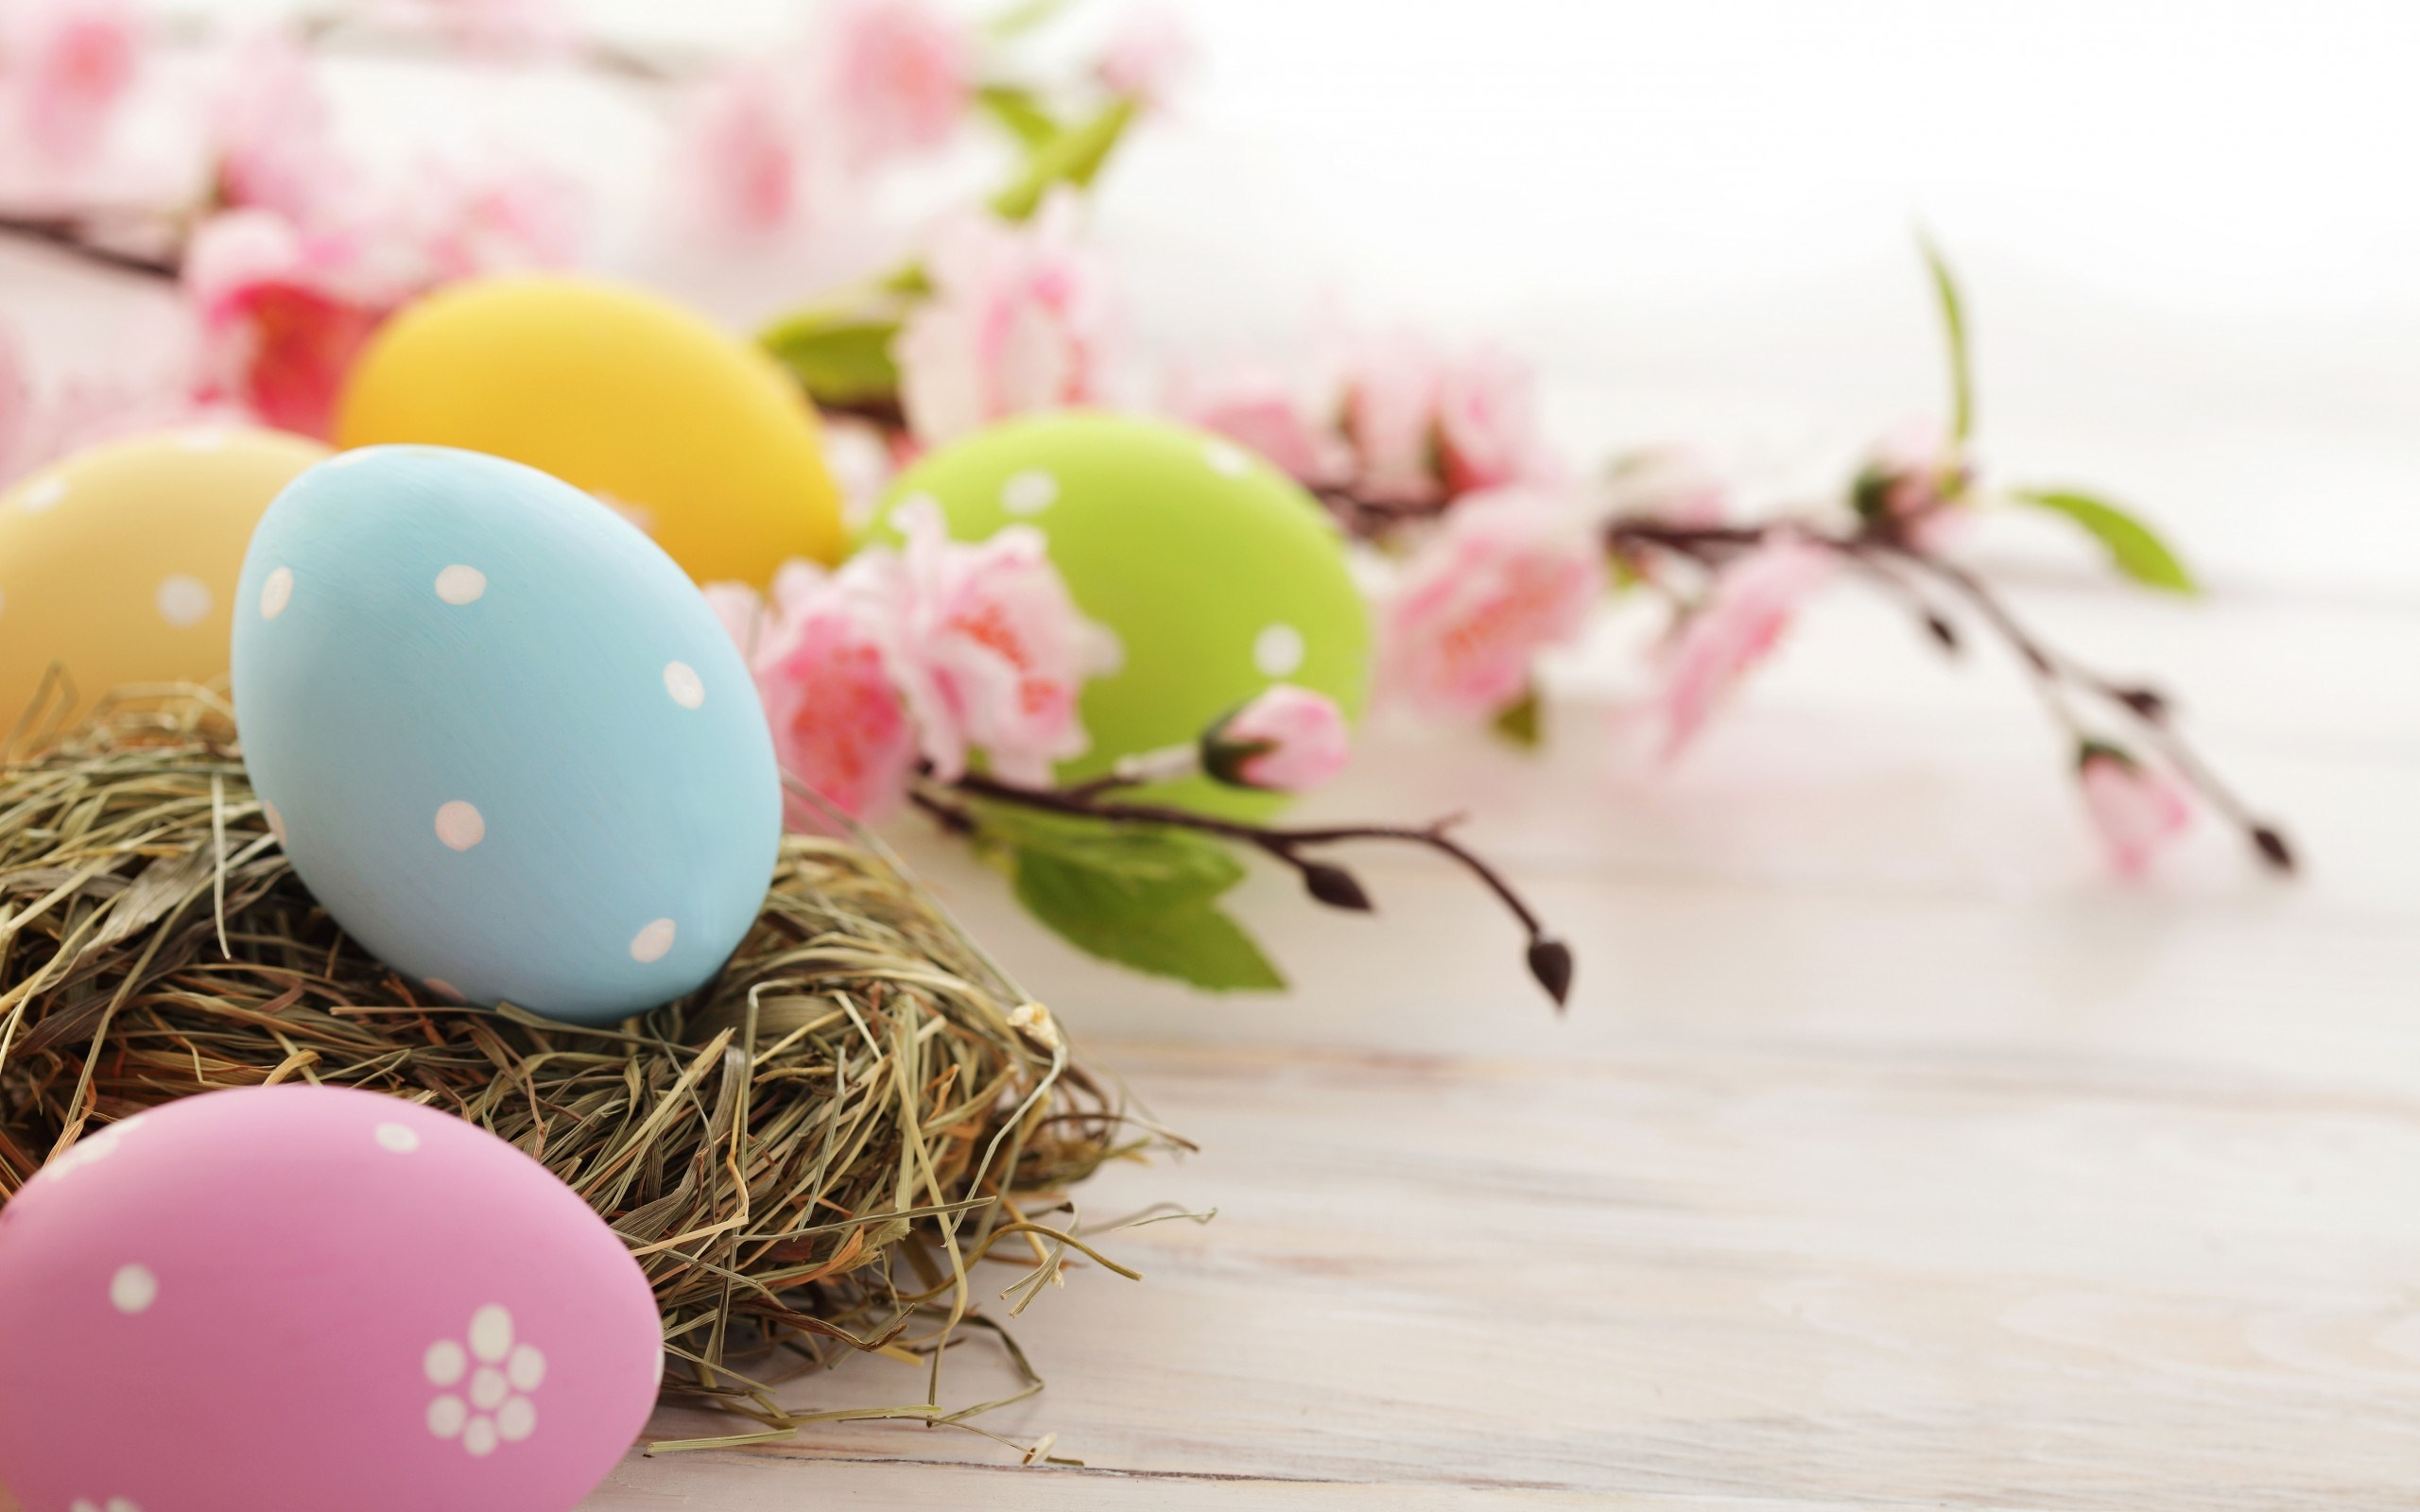 Easter Wallpaper Apple HD Wallpaper 2560x1600